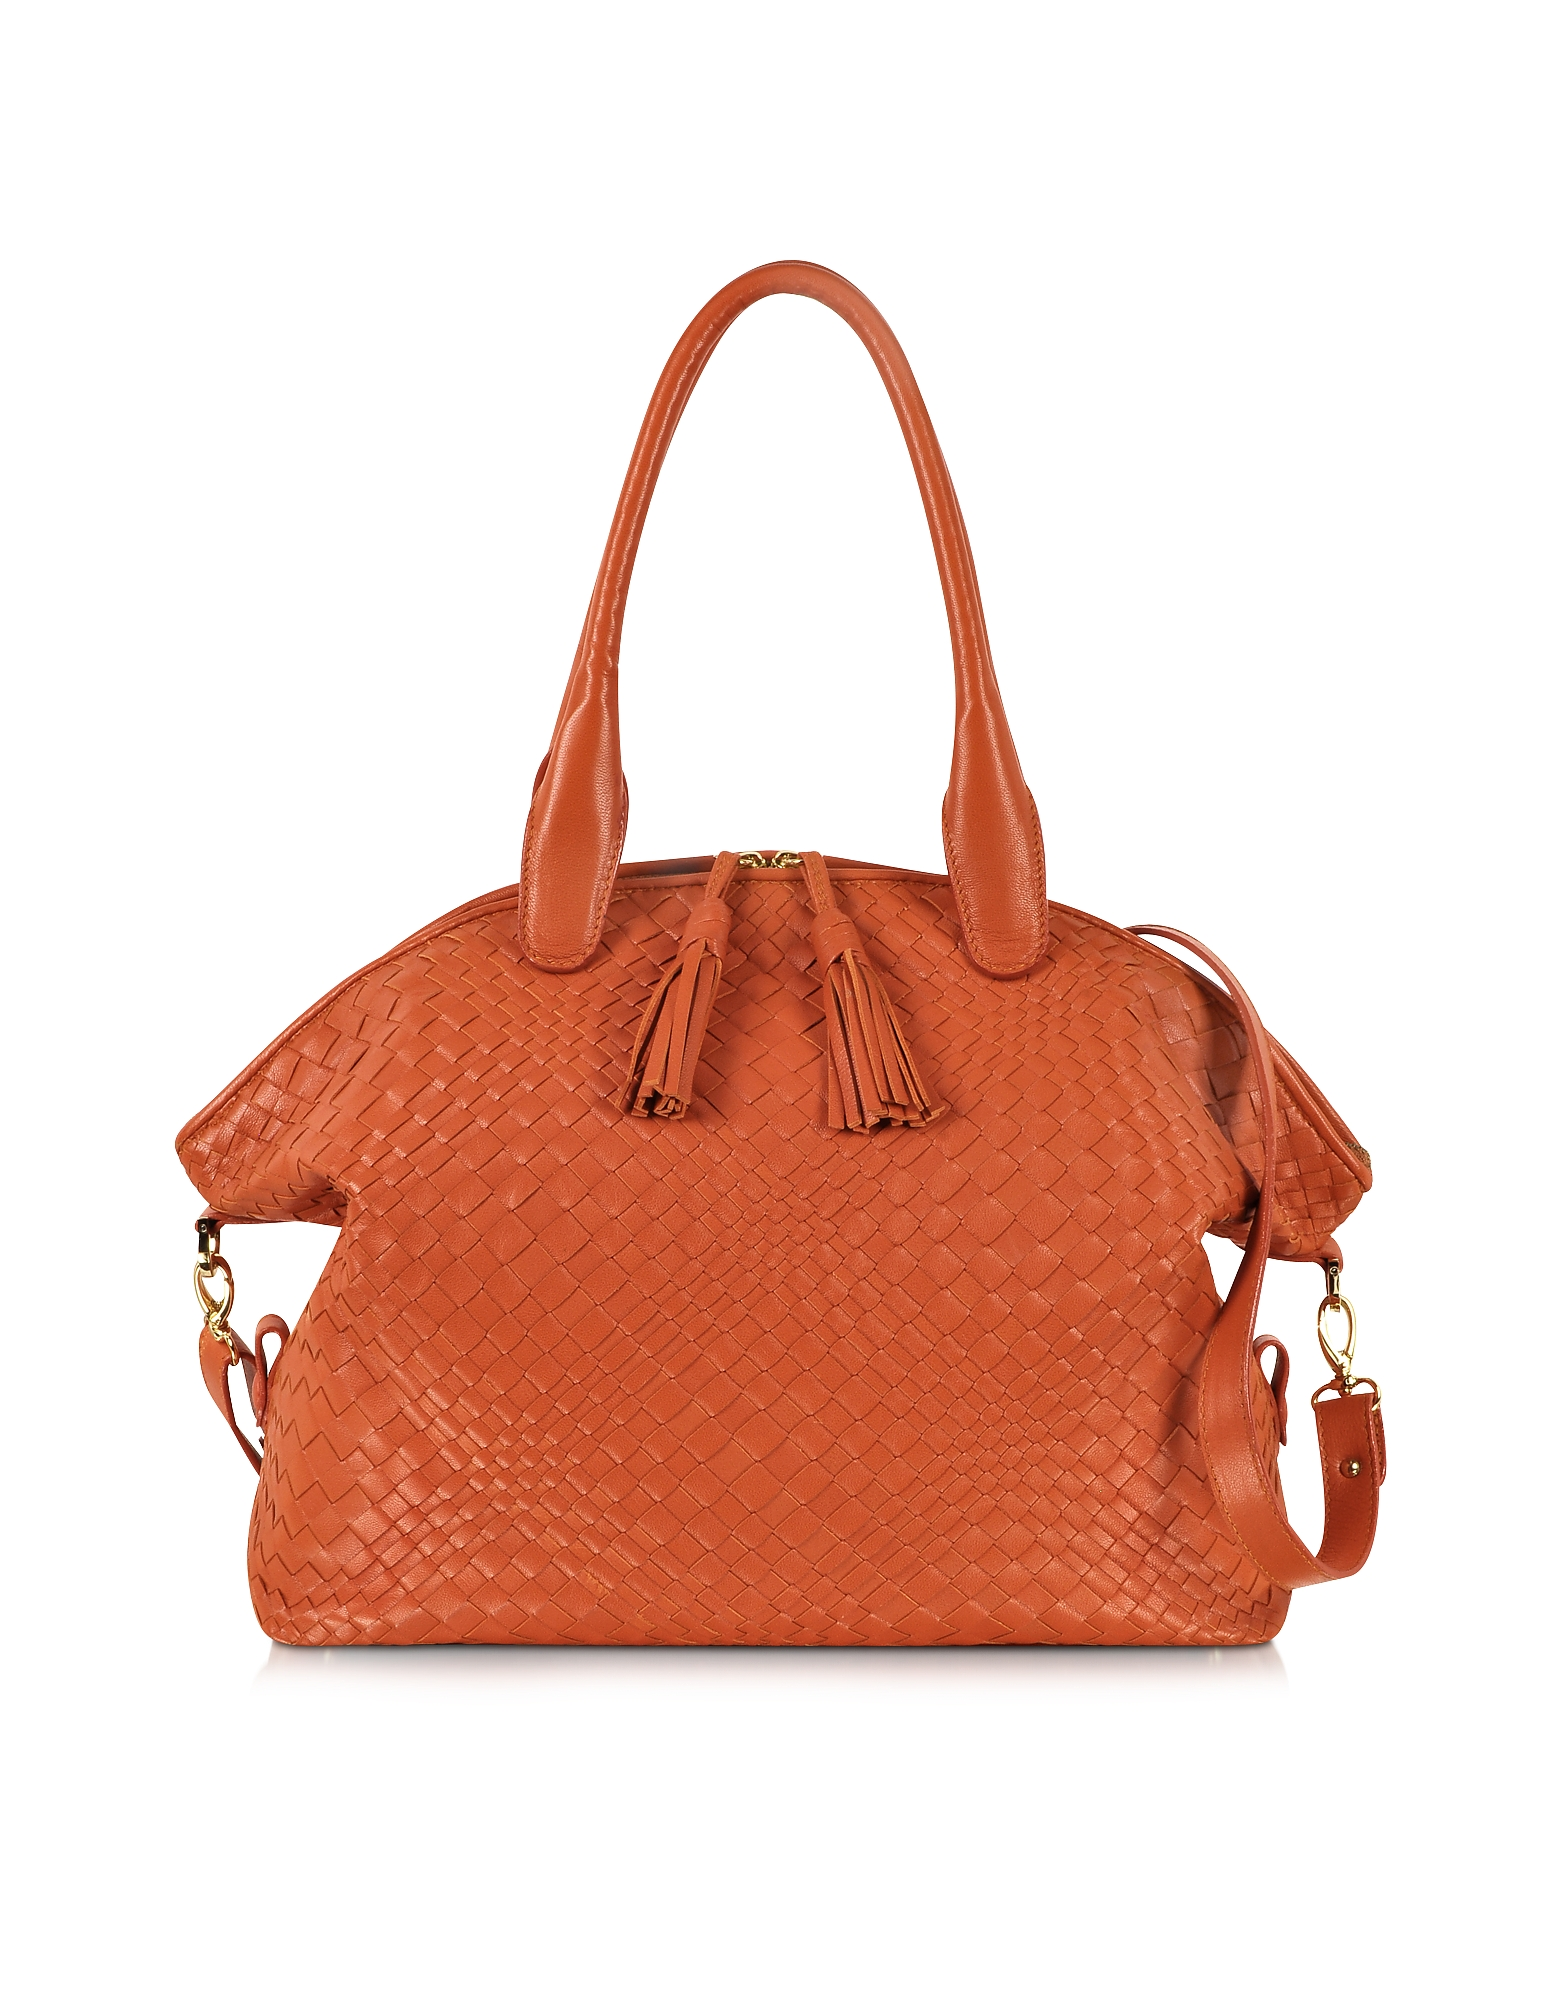 Forzieri Handbags, Orange Woven Leather Bowler Bag